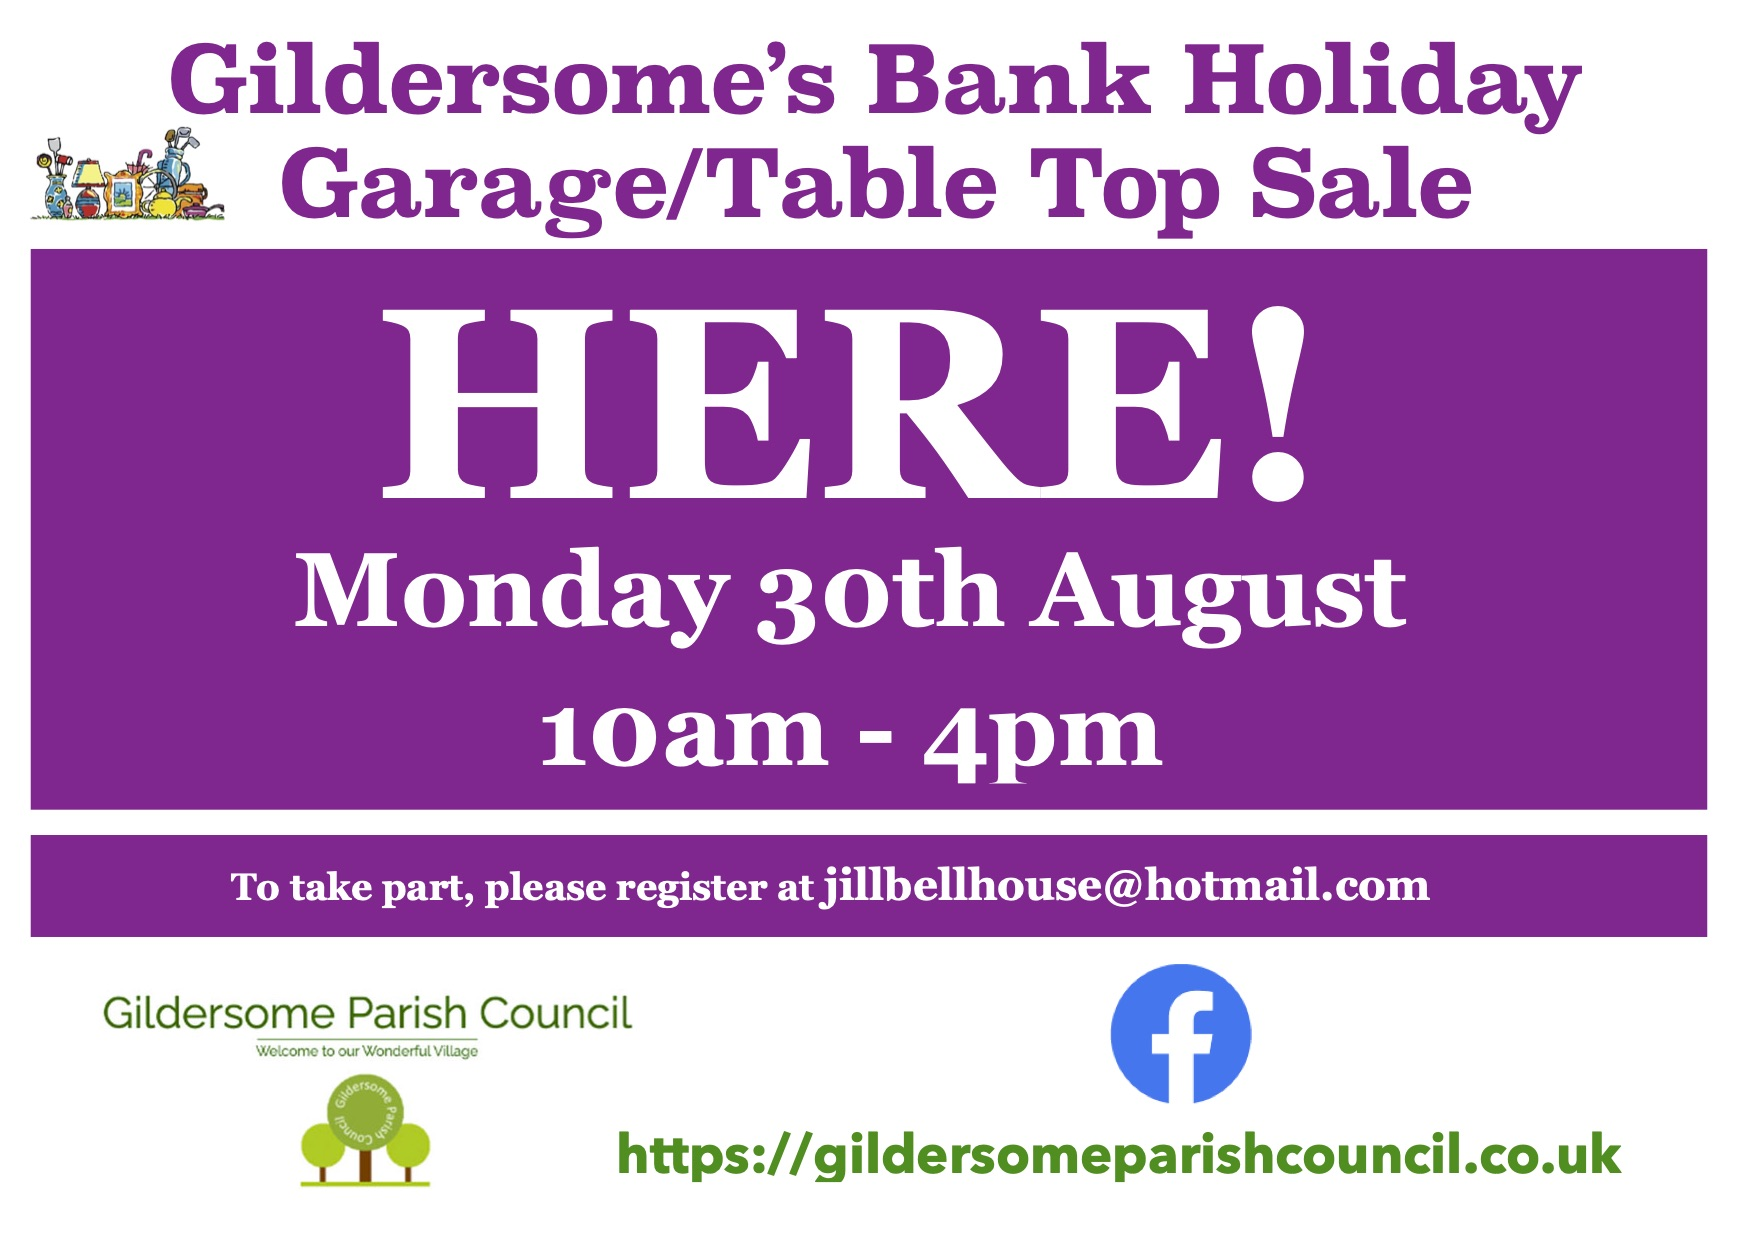 Gildersome Garage Sale Here on Monday 30th August 10am- 4pm poster for houses participating